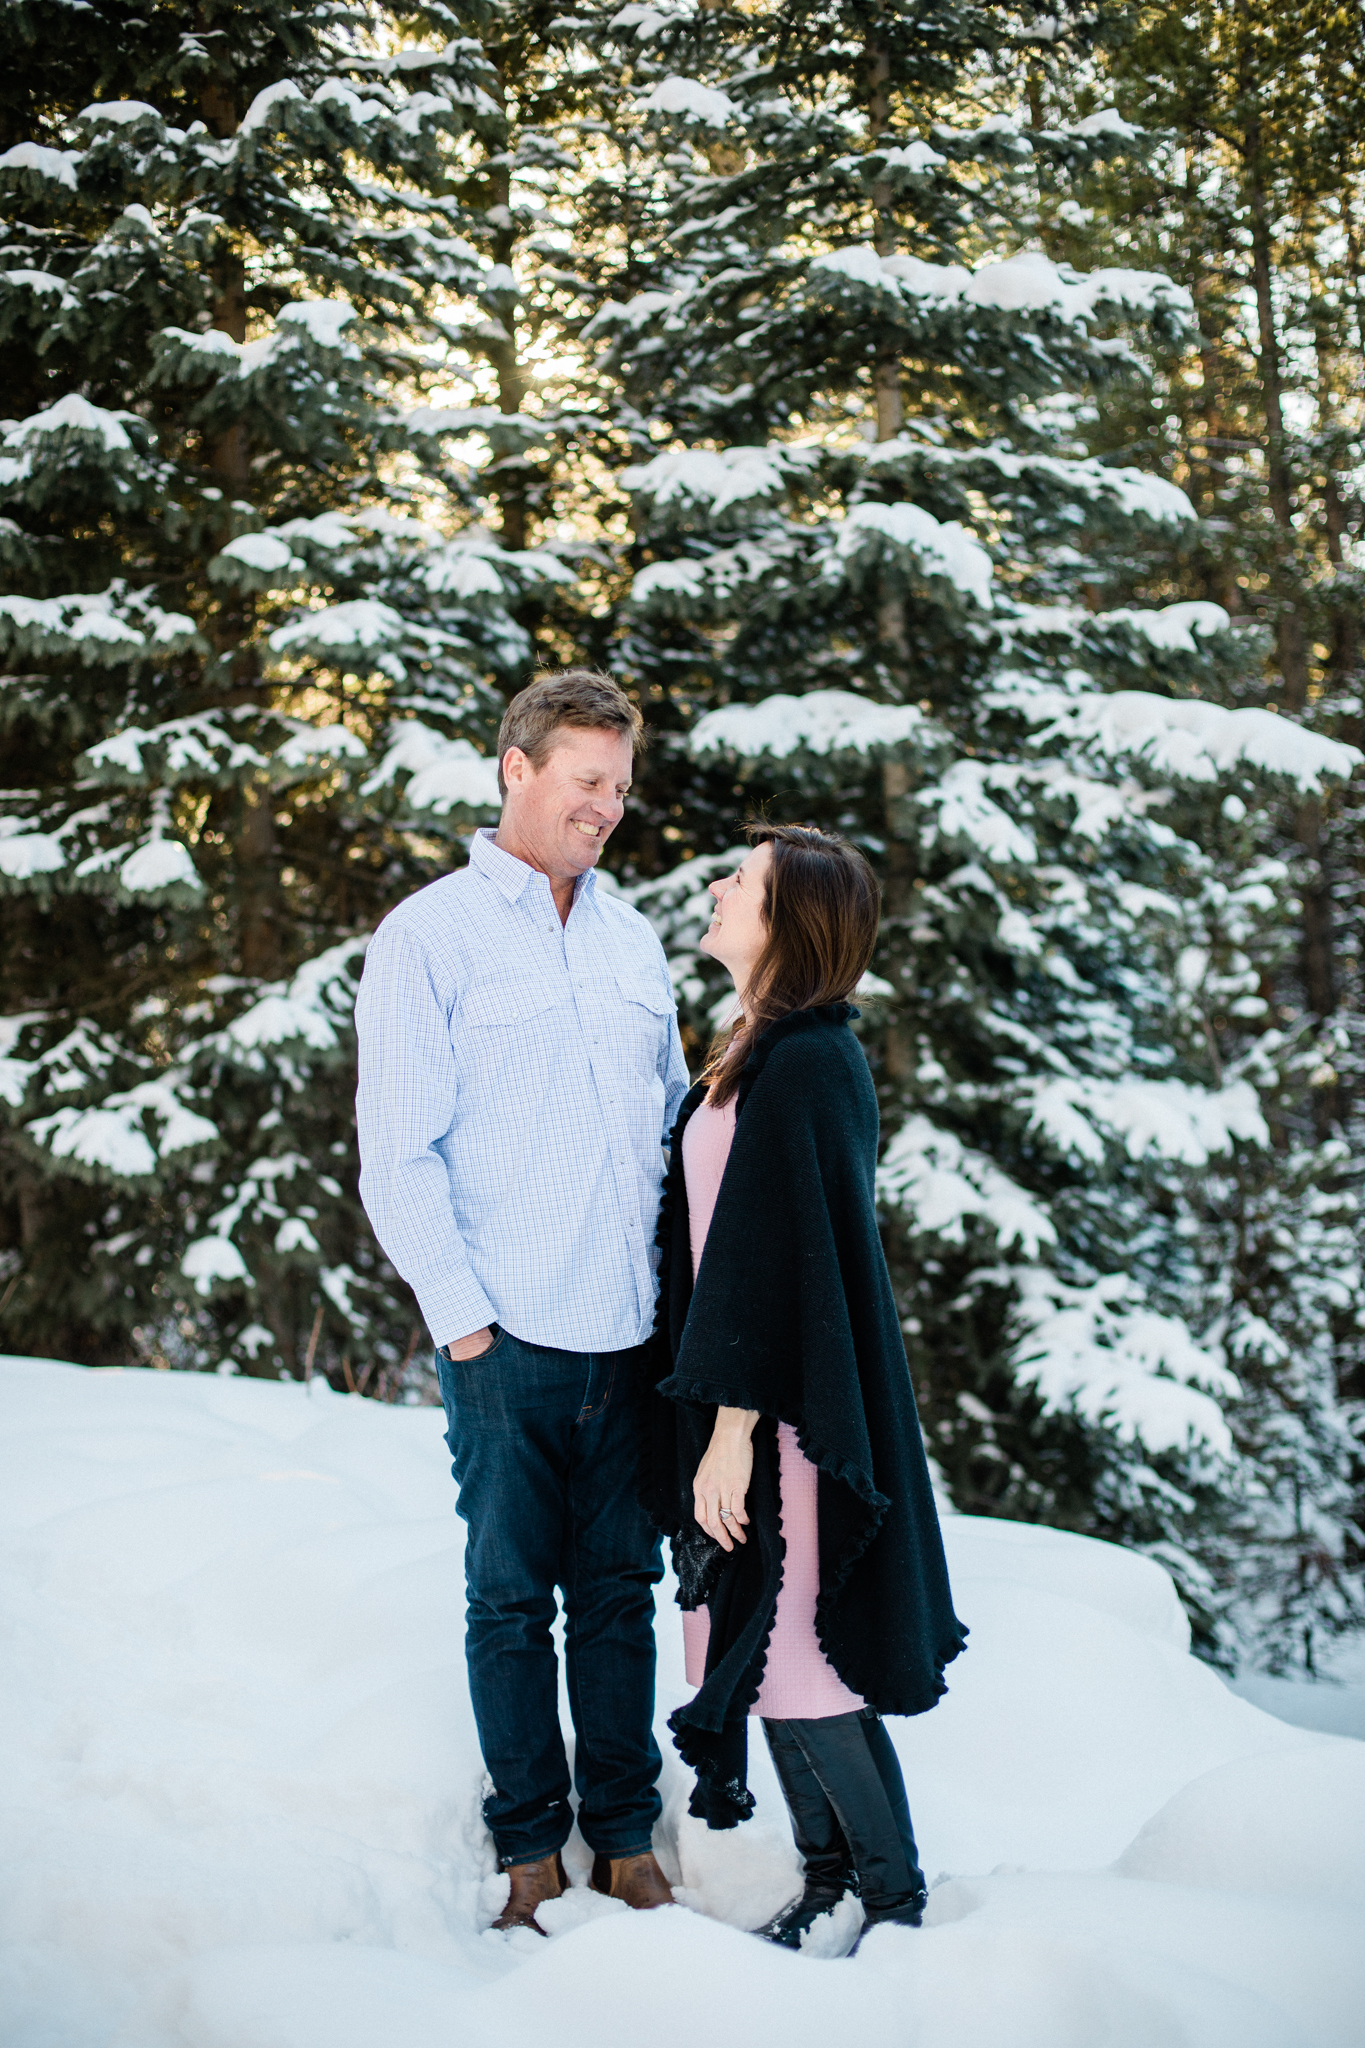 hoffman winter family photography breckenridge